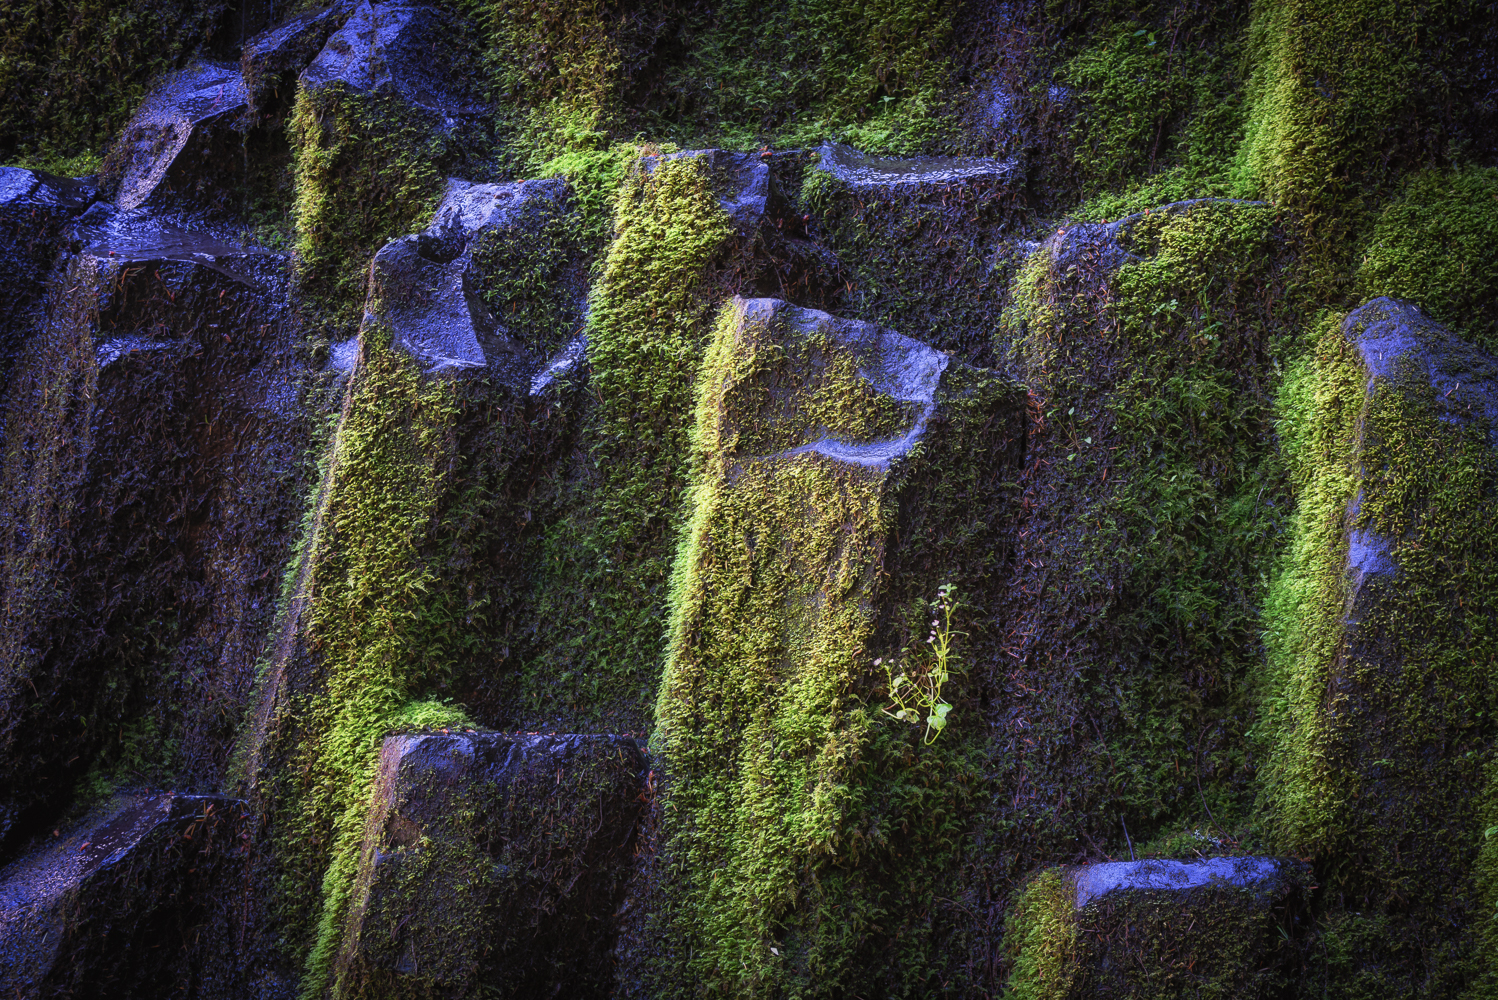 This might be my favourite photo from Oregon, a highly personal perspective of the basalt and moss next to Proxy Falls.